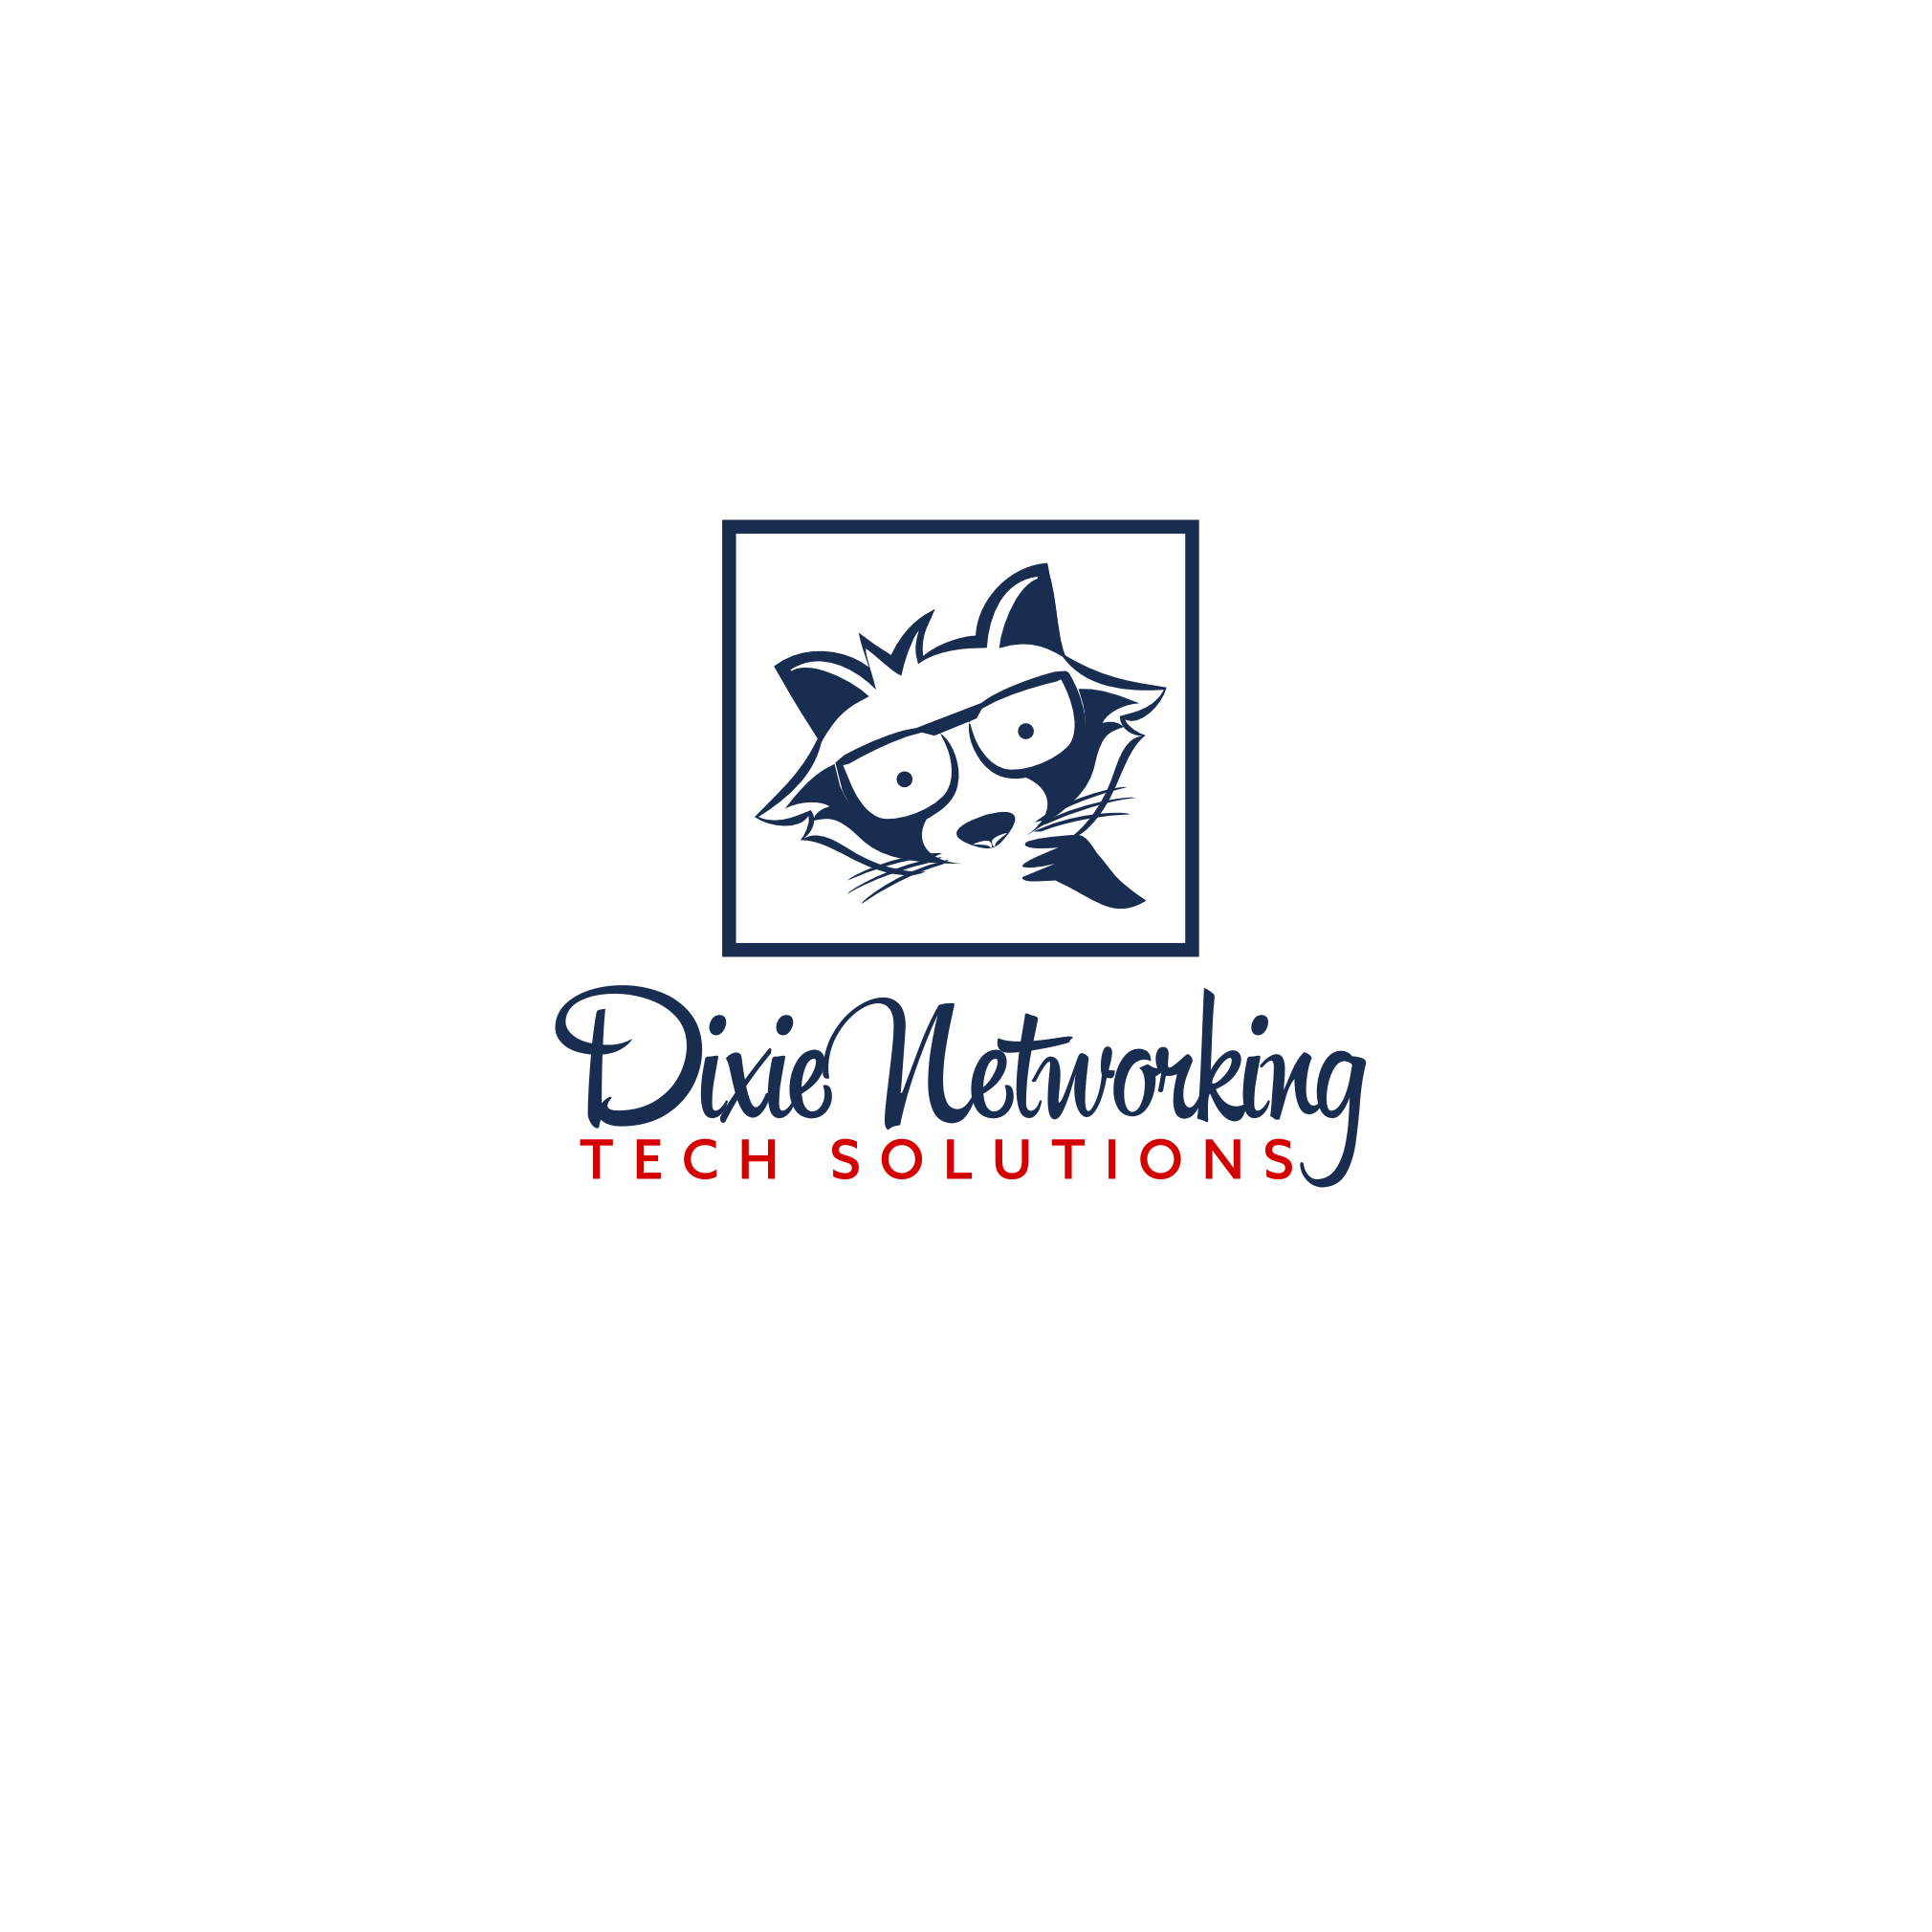 FUN logo needed for Dixie Networking